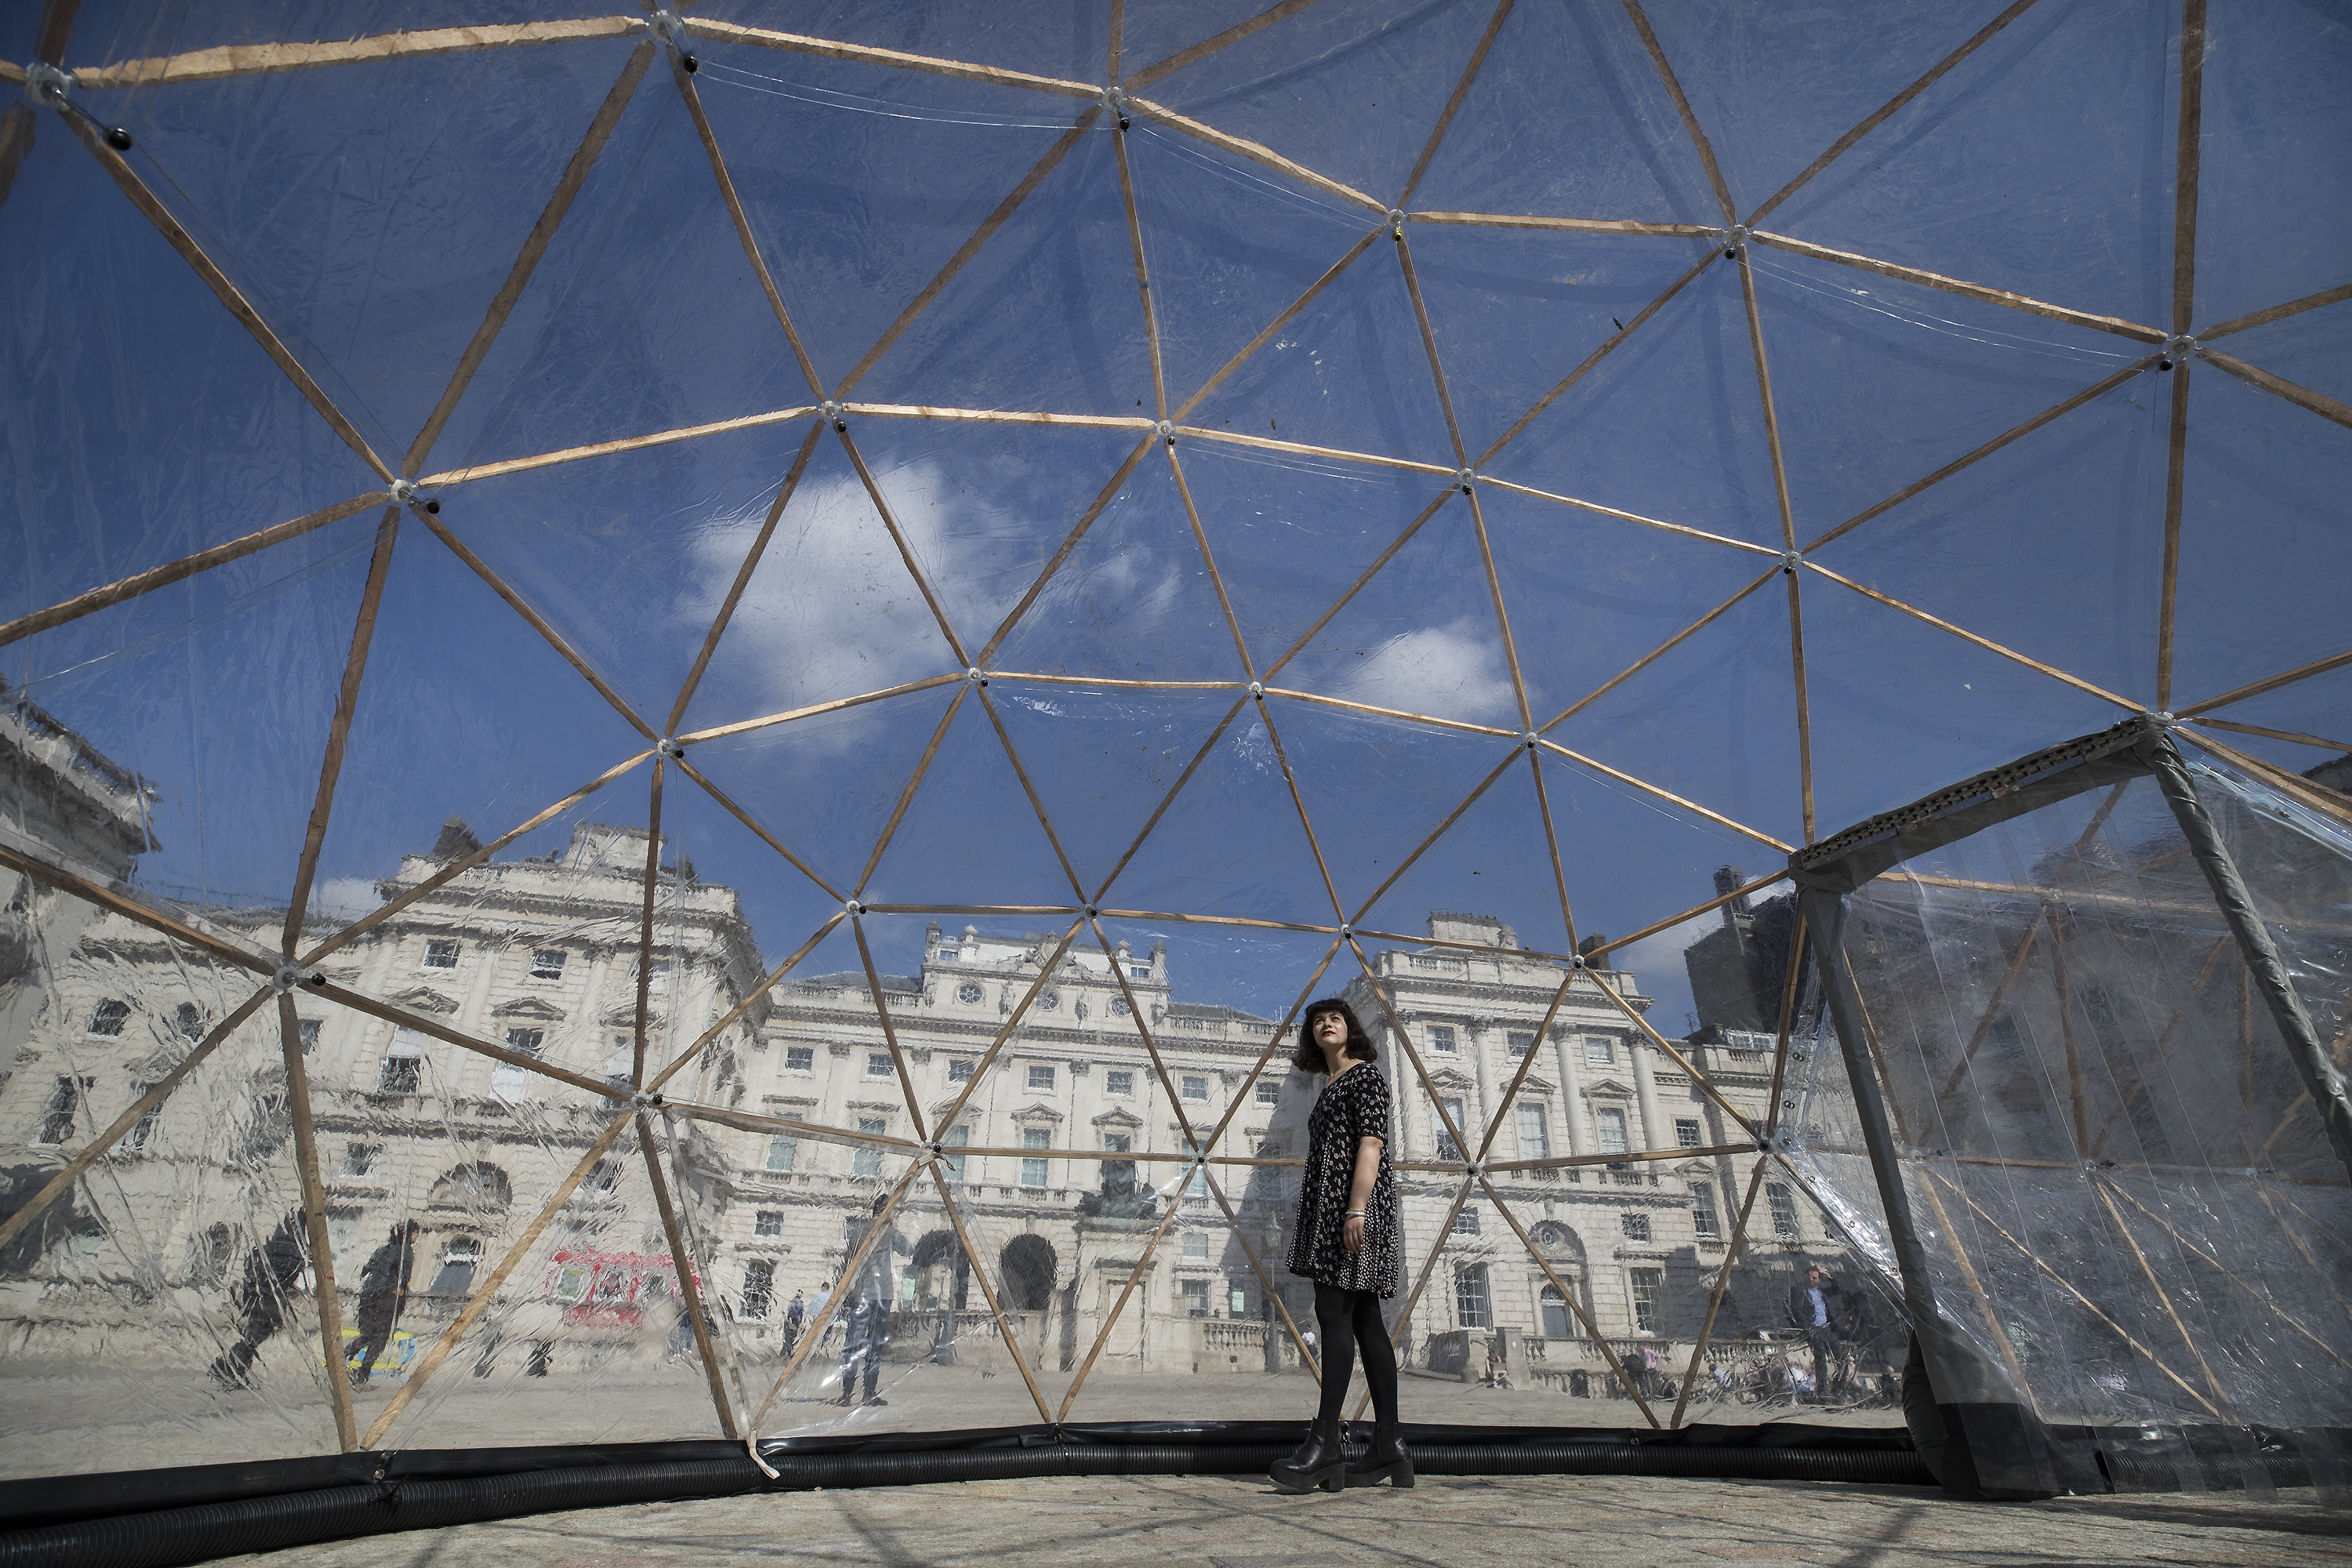 18/04/2018. London, UK. A visitor walks through one of British artist Michael Pinsky's Pollution Pods, a new sensory work installed in the courtyard at Somerset House in London to mark Earth Day 2018. A series of five connecting domes recreate the pollution from London, Beijing, São Paulo, New Delhi and Tautra in Norway. Visitors are invited to experience first-hand the difference in the air quality of global environments. The Pollution Pods are open until 25th April 2018, including Earth Day on the 22nd April. Photo credit: Peter Macdiarmid/Somerset House